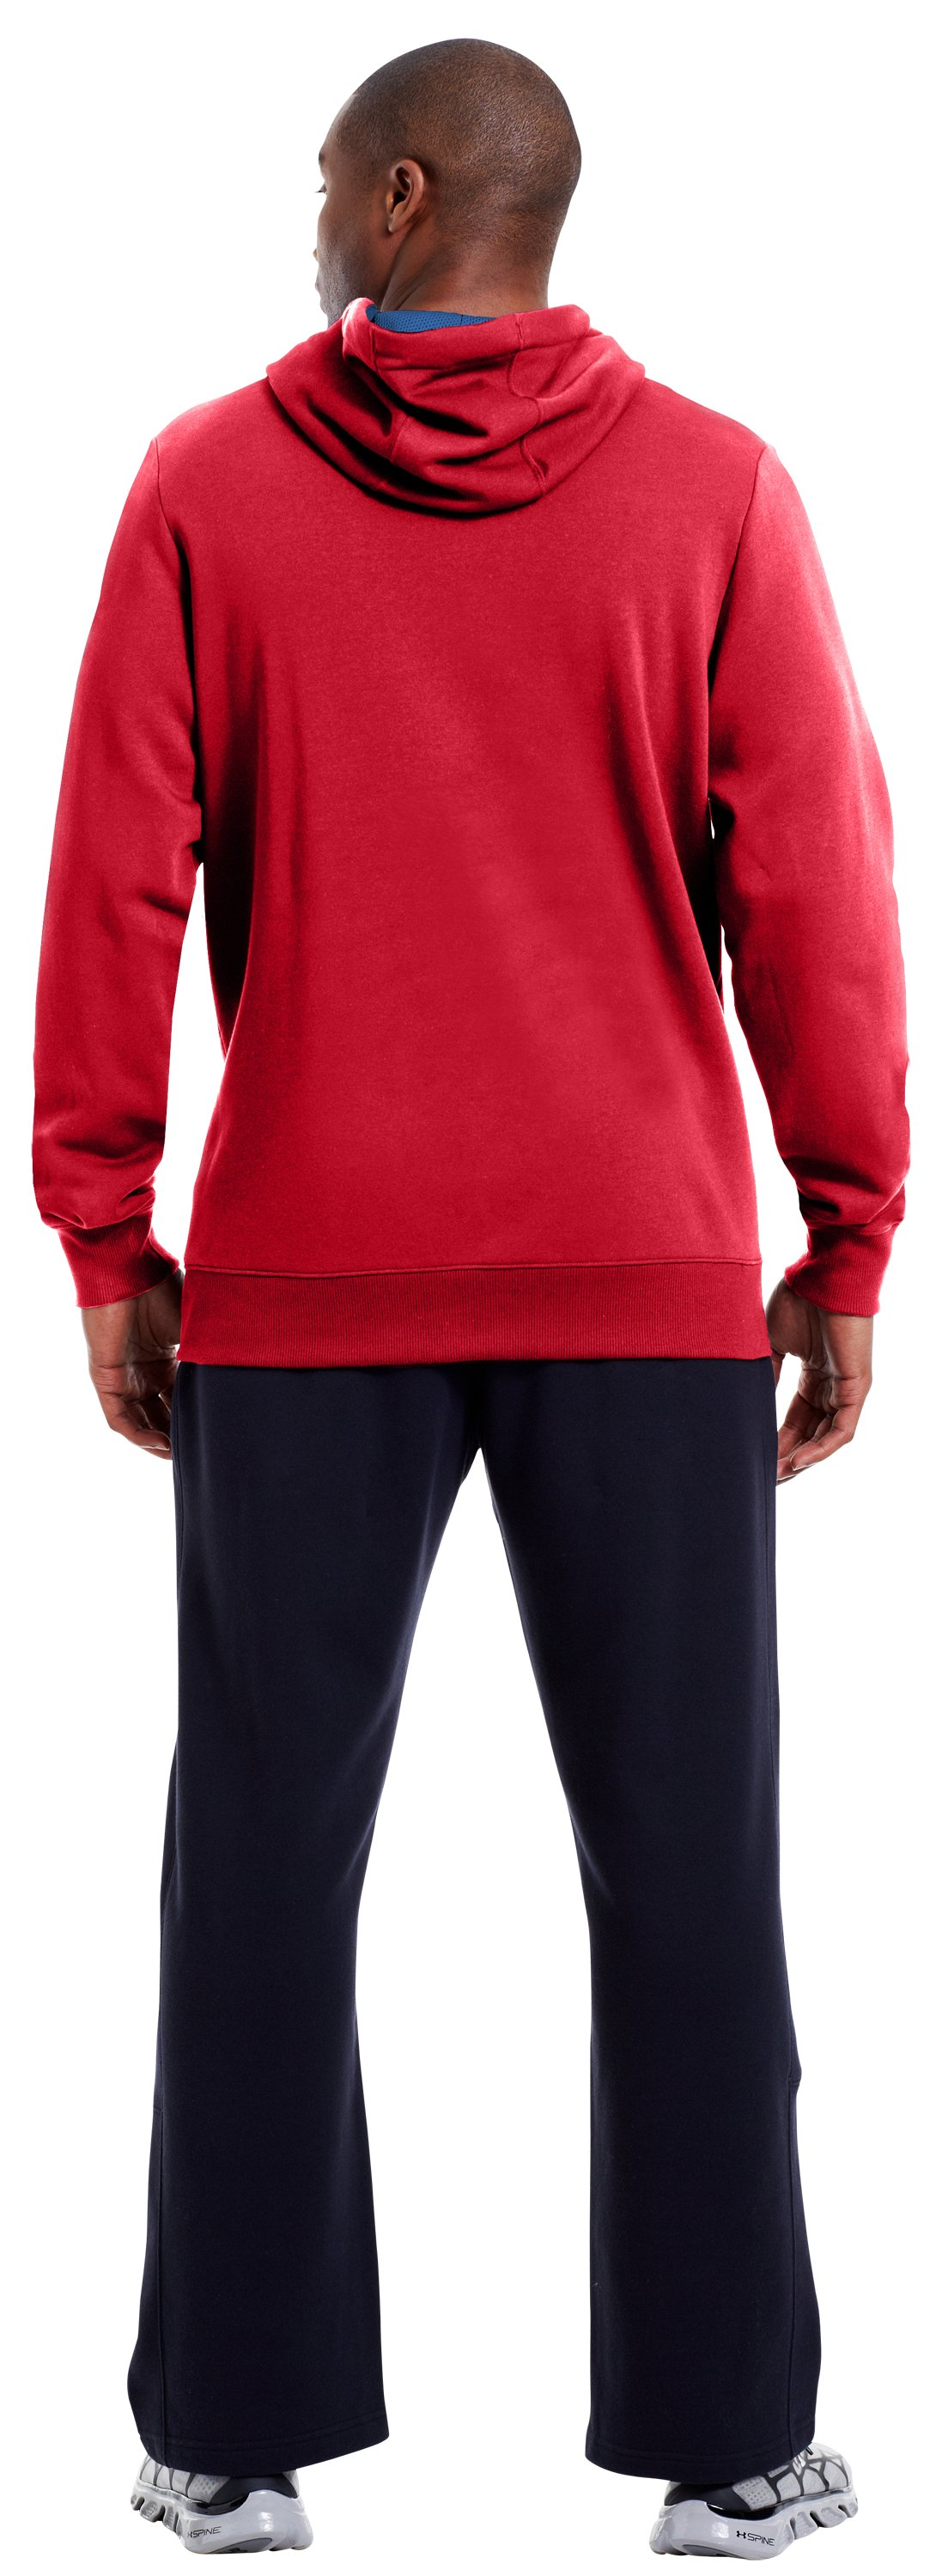 Men's Charged Cotton® Storm Battle Hoodie, Red, Back